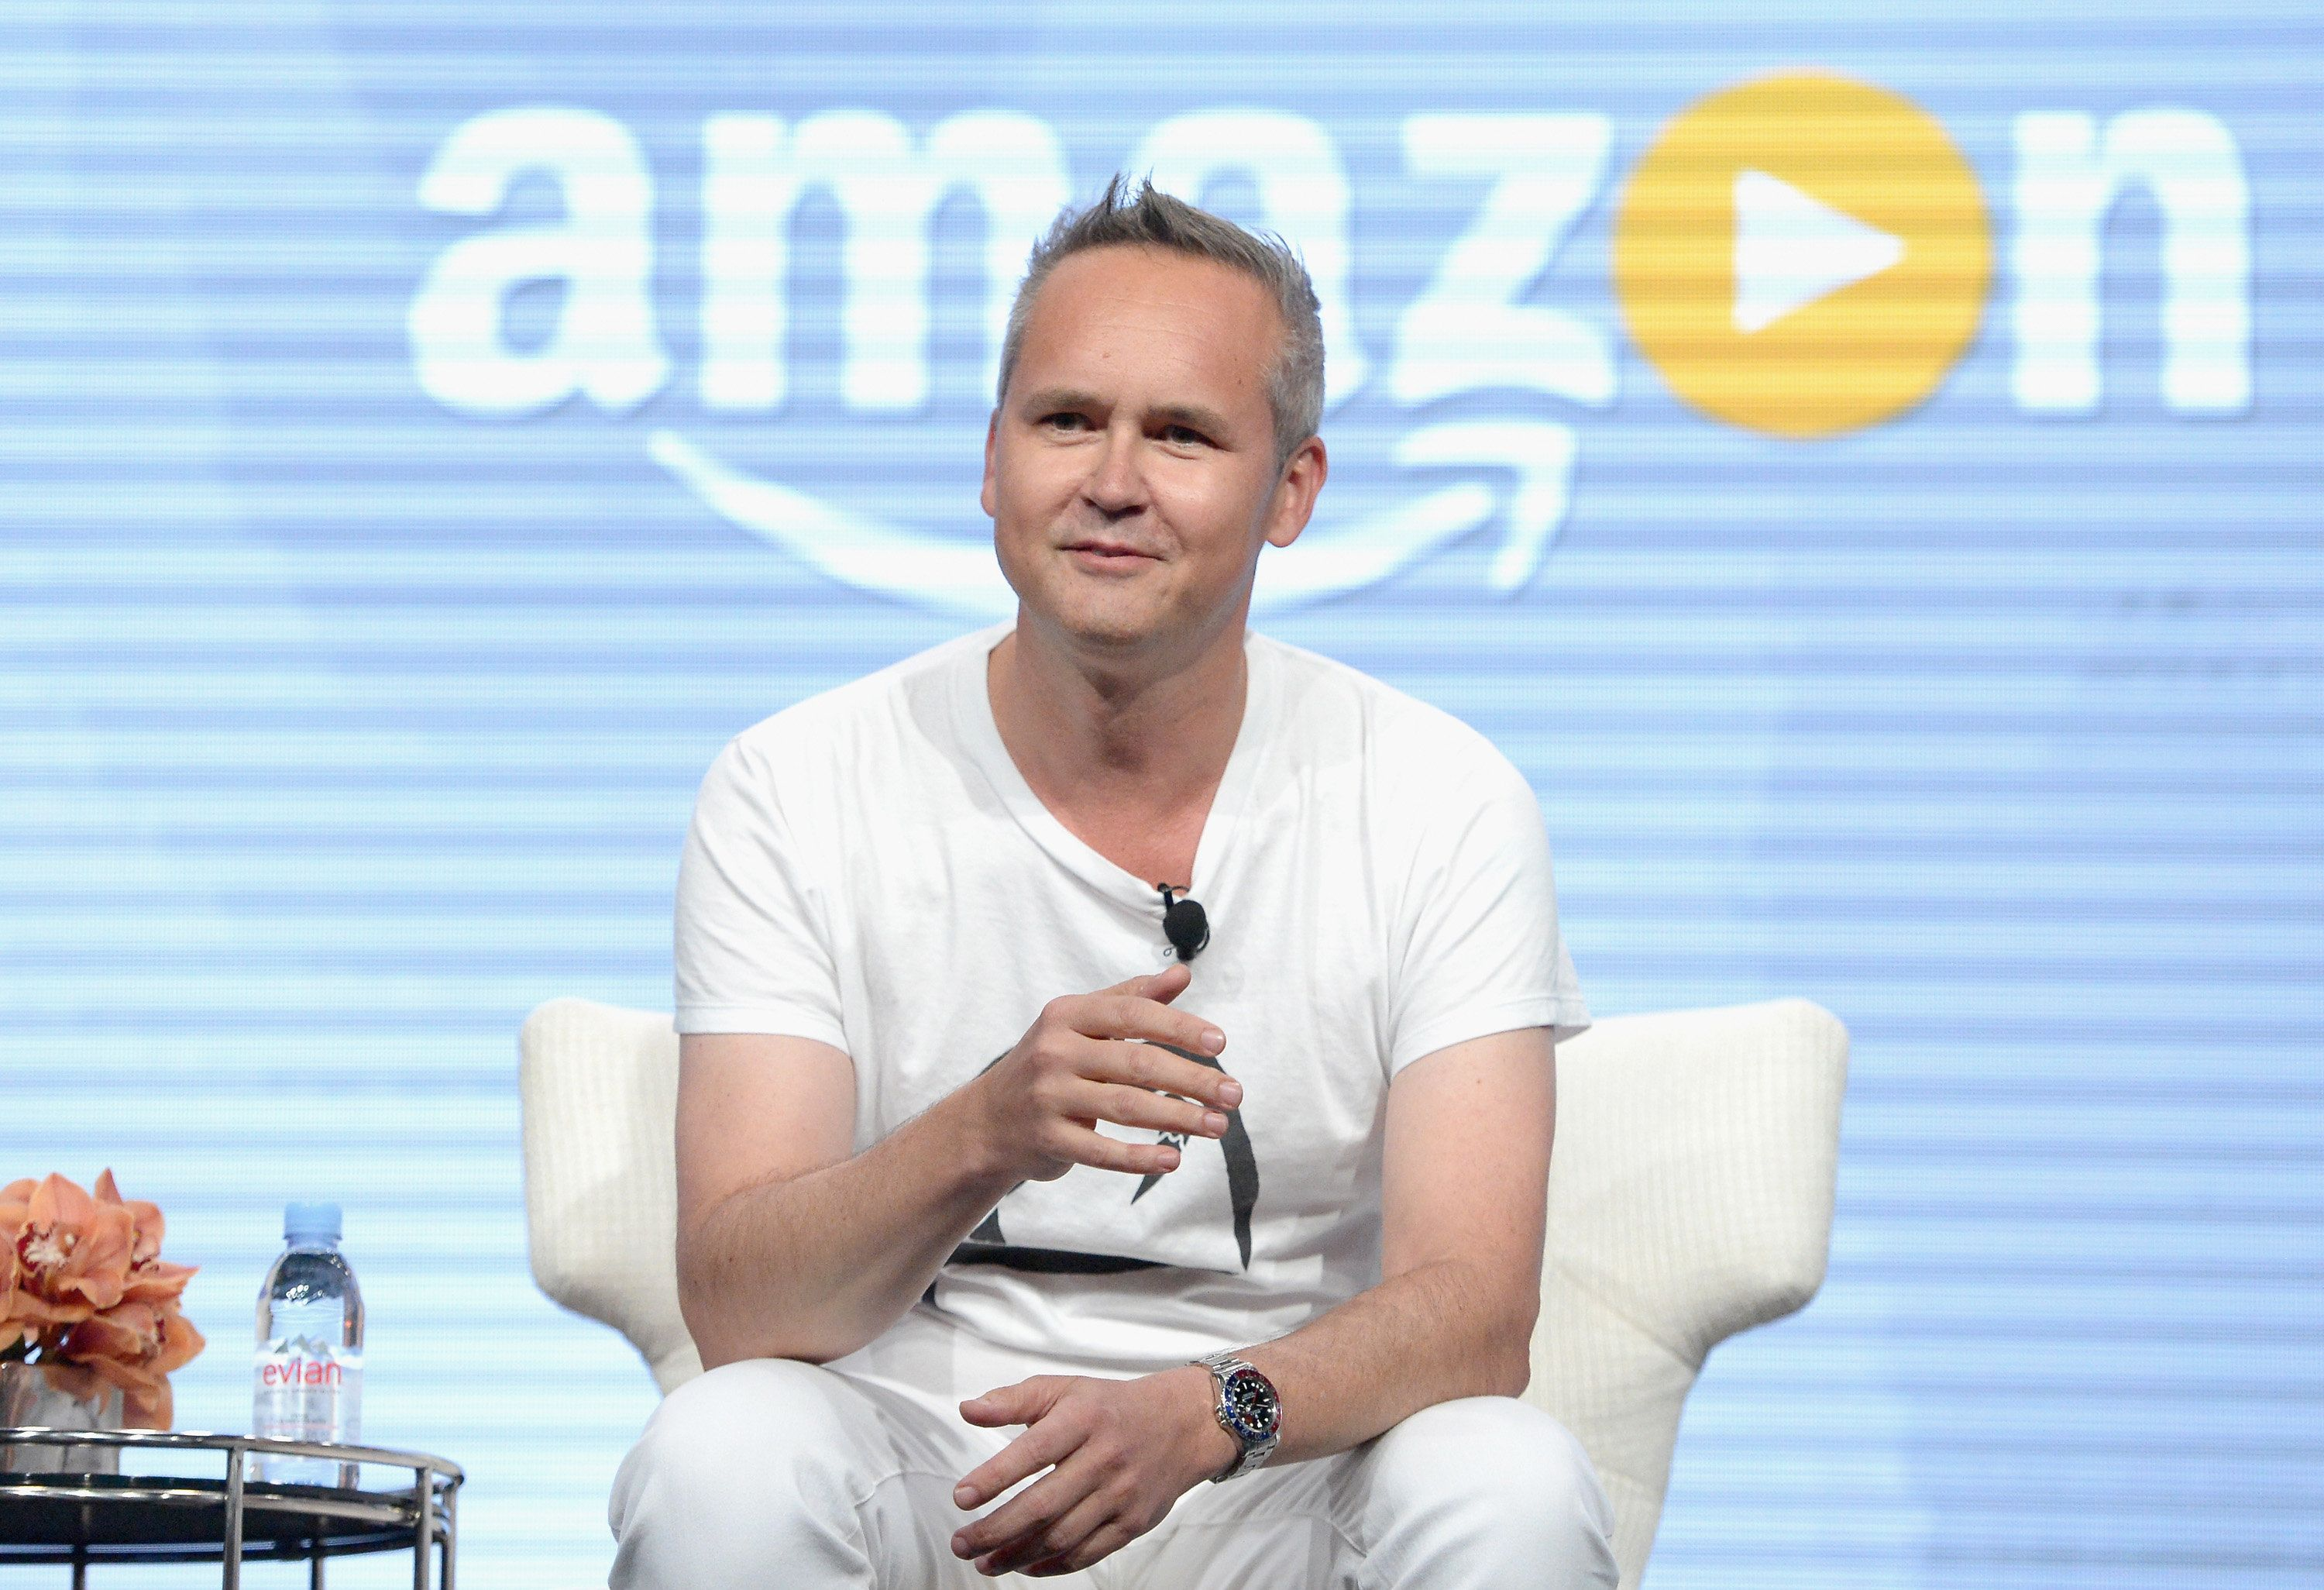 BEVERLY HILLS, CA - AUGUST 07:  Head of Amazon Studios Roy Price attends the Amazon 2016 Summer TCA Press Tour at The Beverly Hilton Hotel on August 7, 2016 in Beverly Hills, California.  (Photo by Charley Gallay/Getty Images for Amazon Studios)